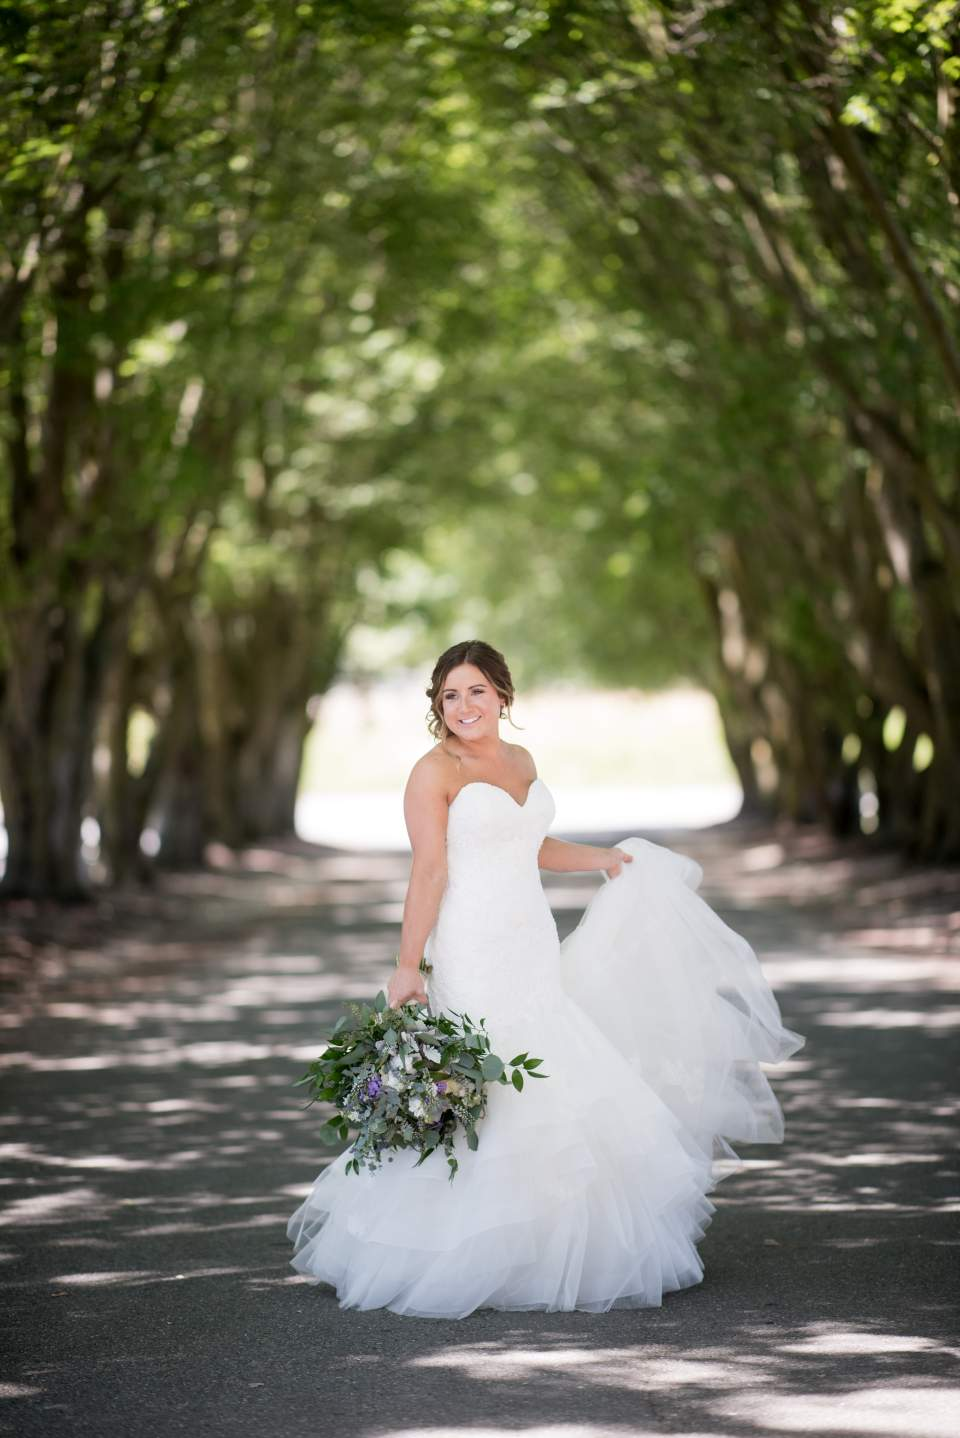 bride twirling wedding dress in a row of trees